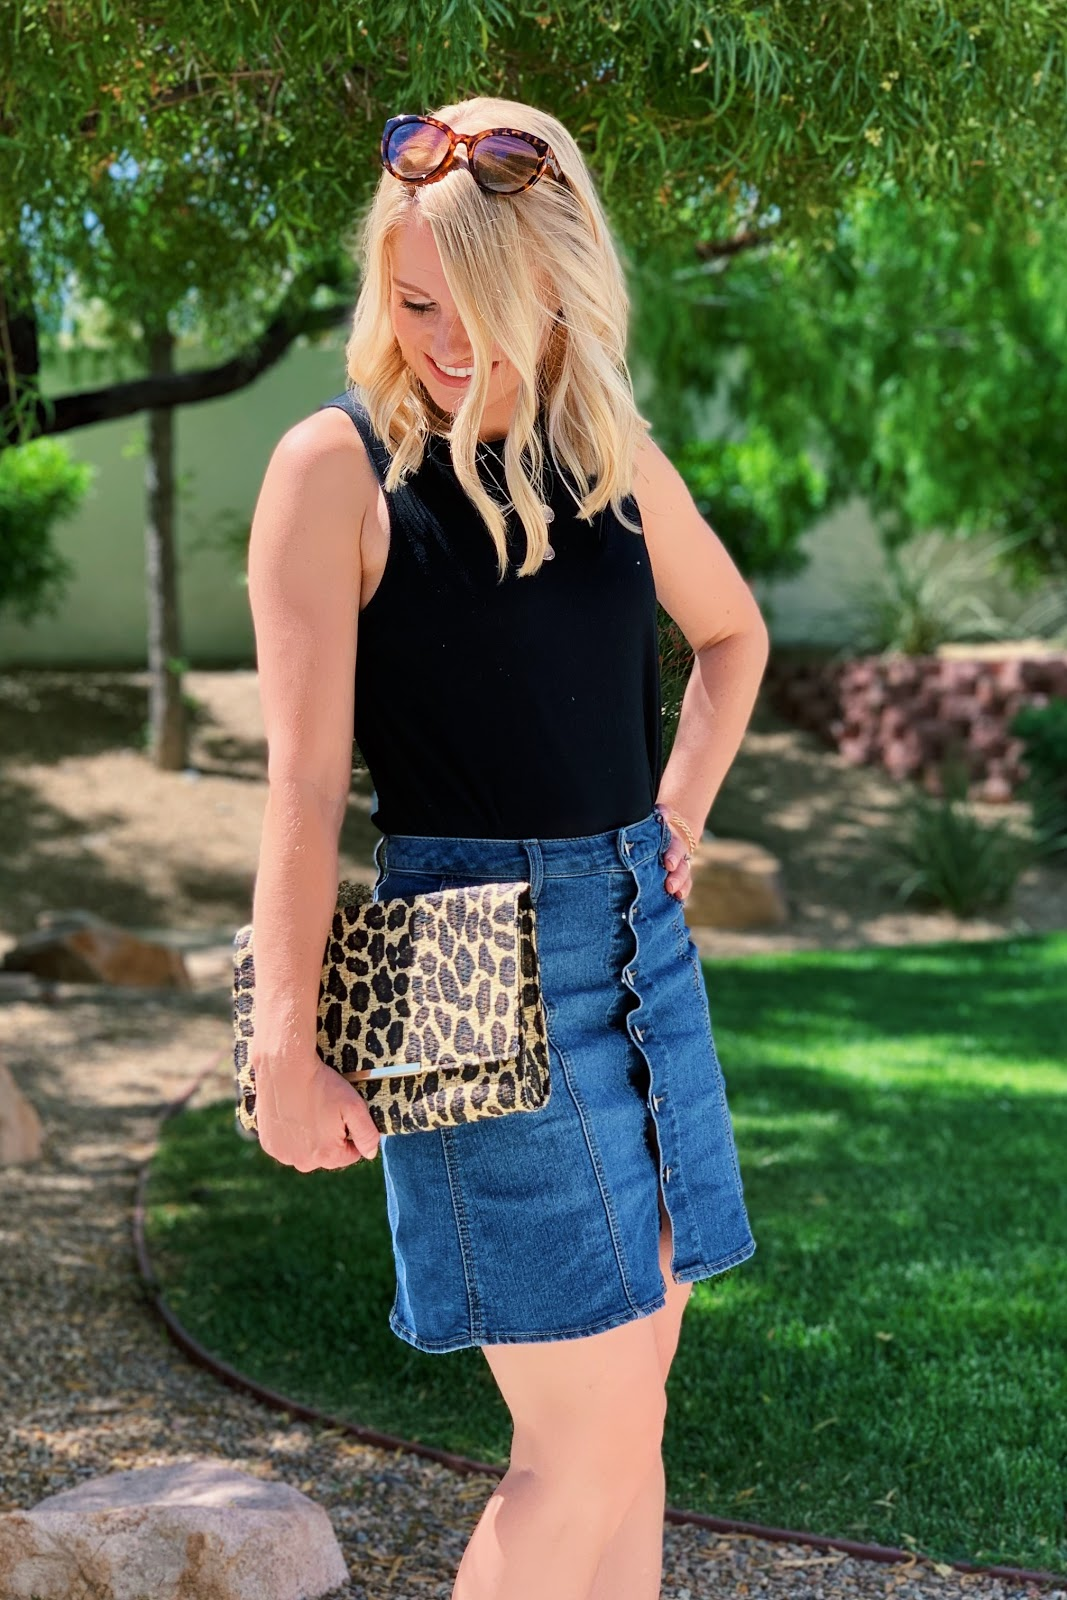 Button front denim skirt with black top